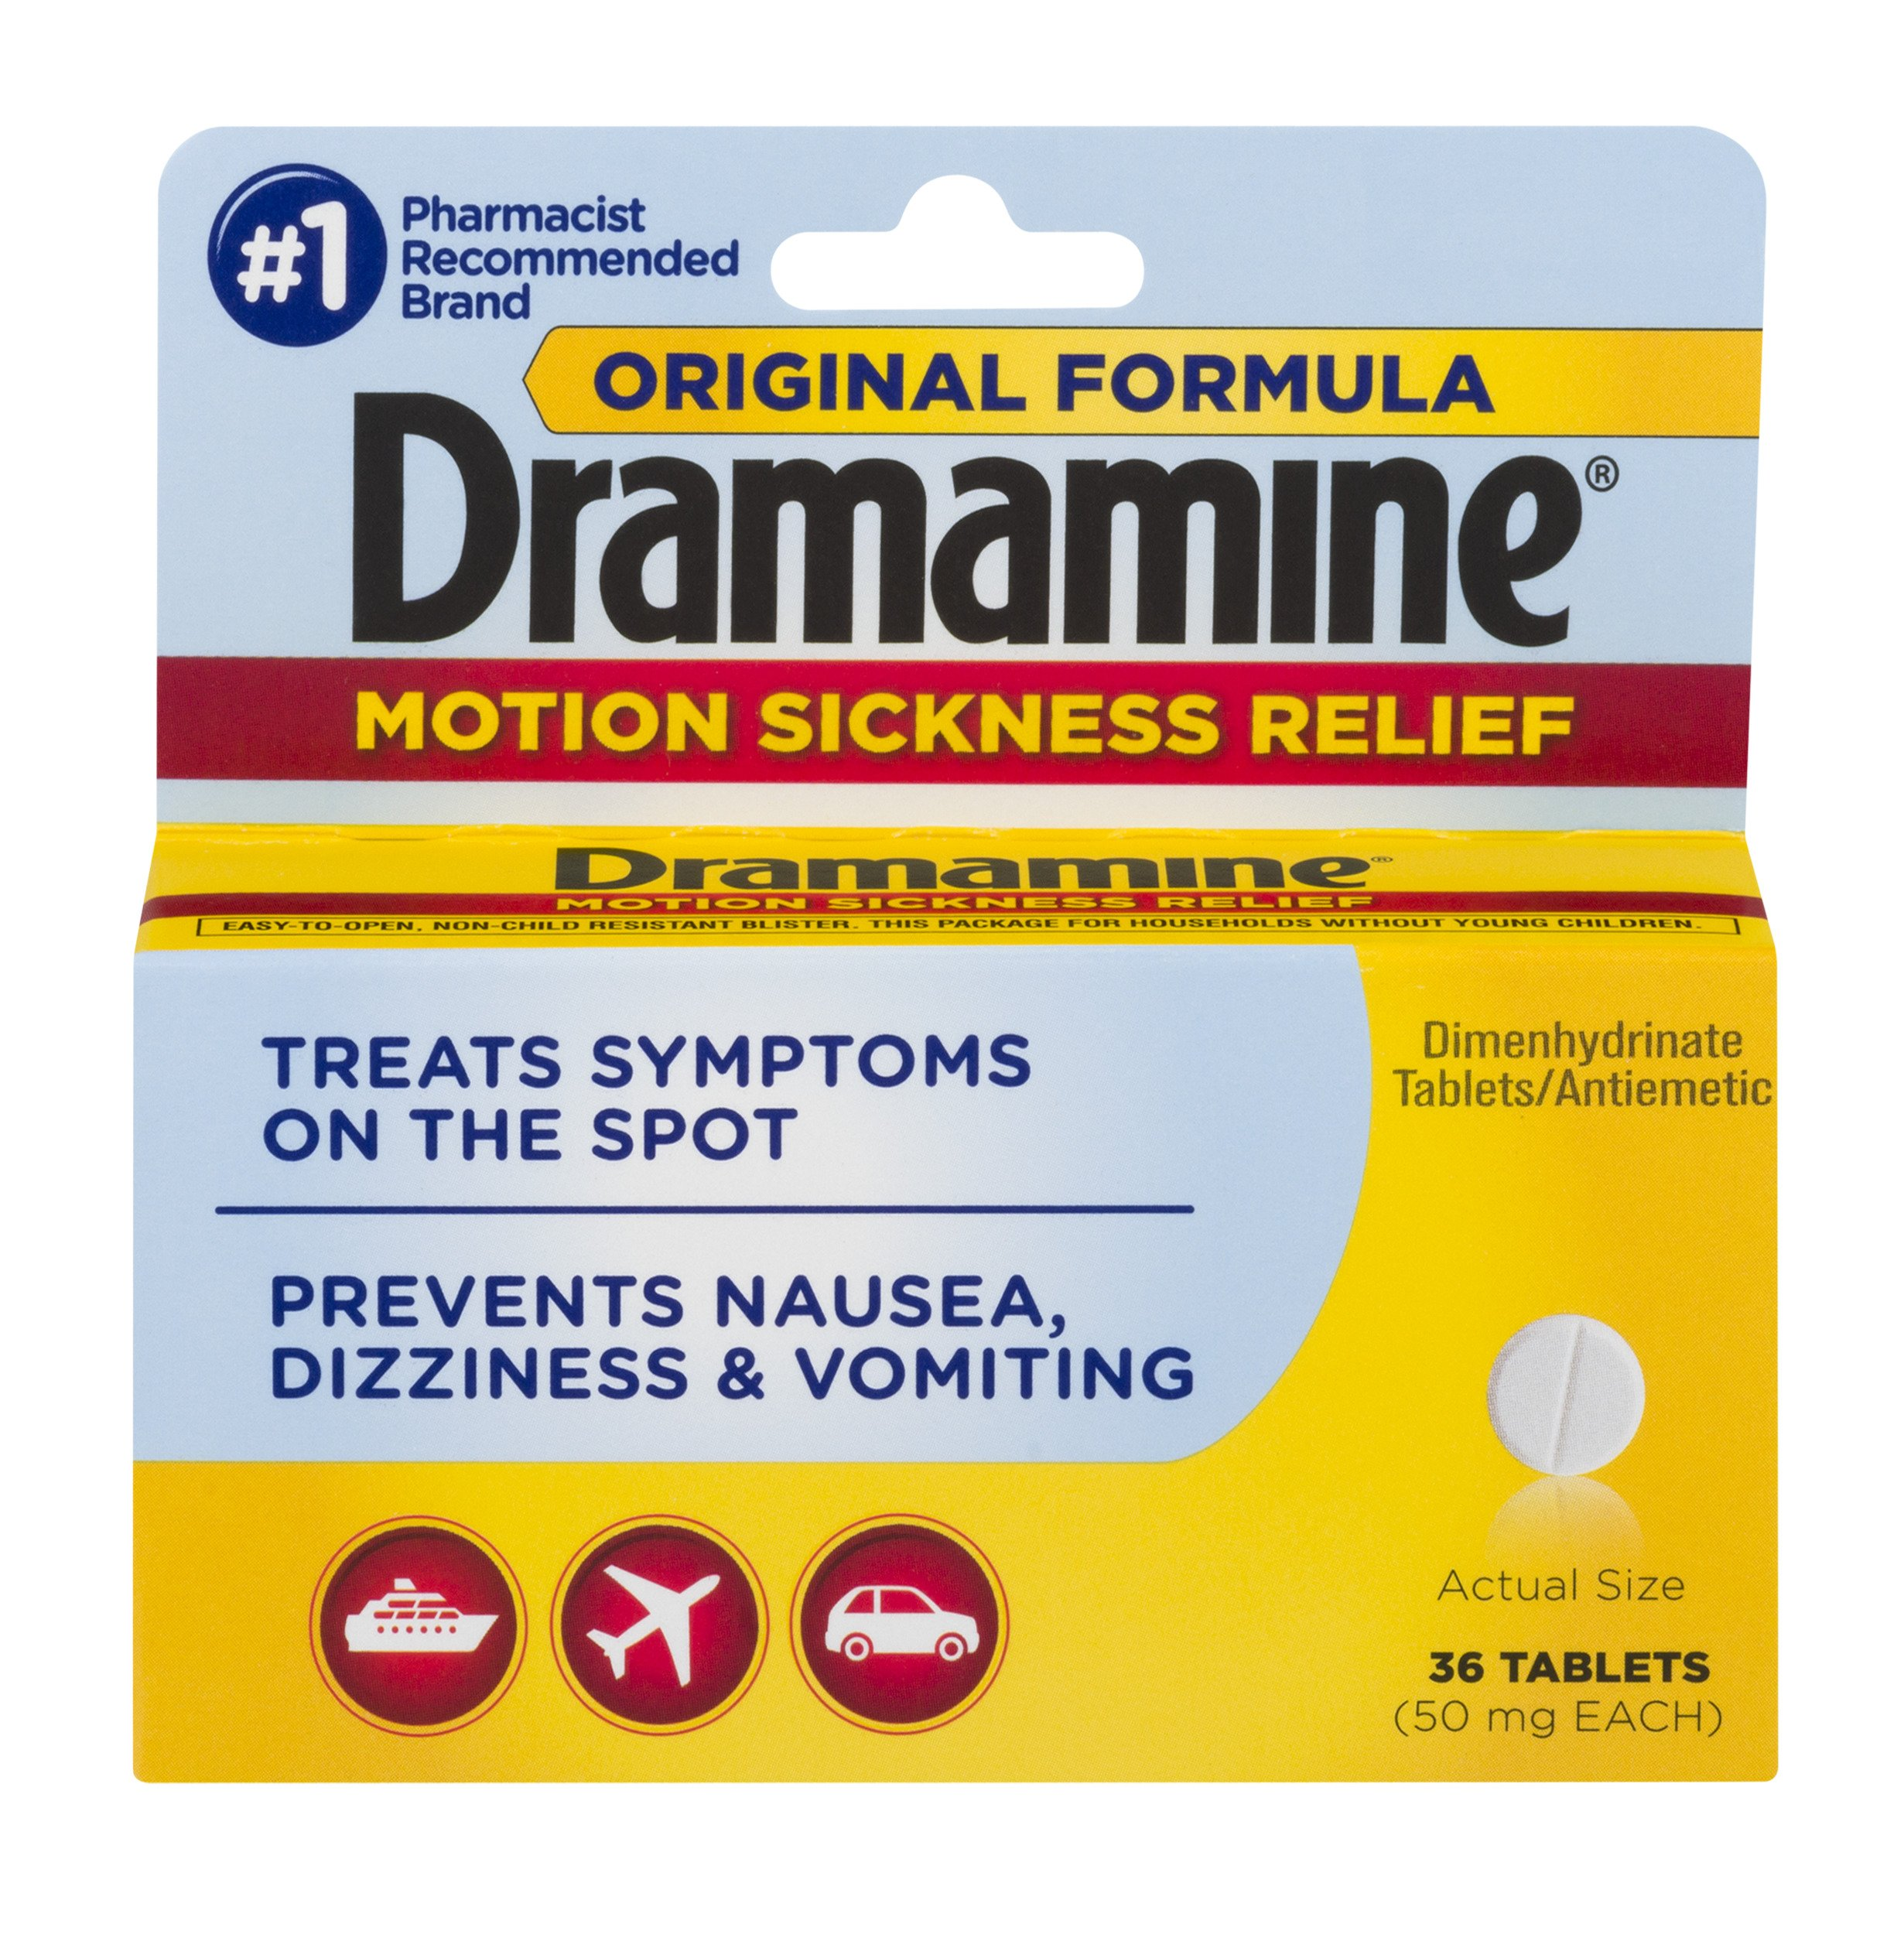 Dramamine Motion Sickness Relief Original Formula | 36 Tablets | Prevents Nausea, Dizziness, and Vomiting